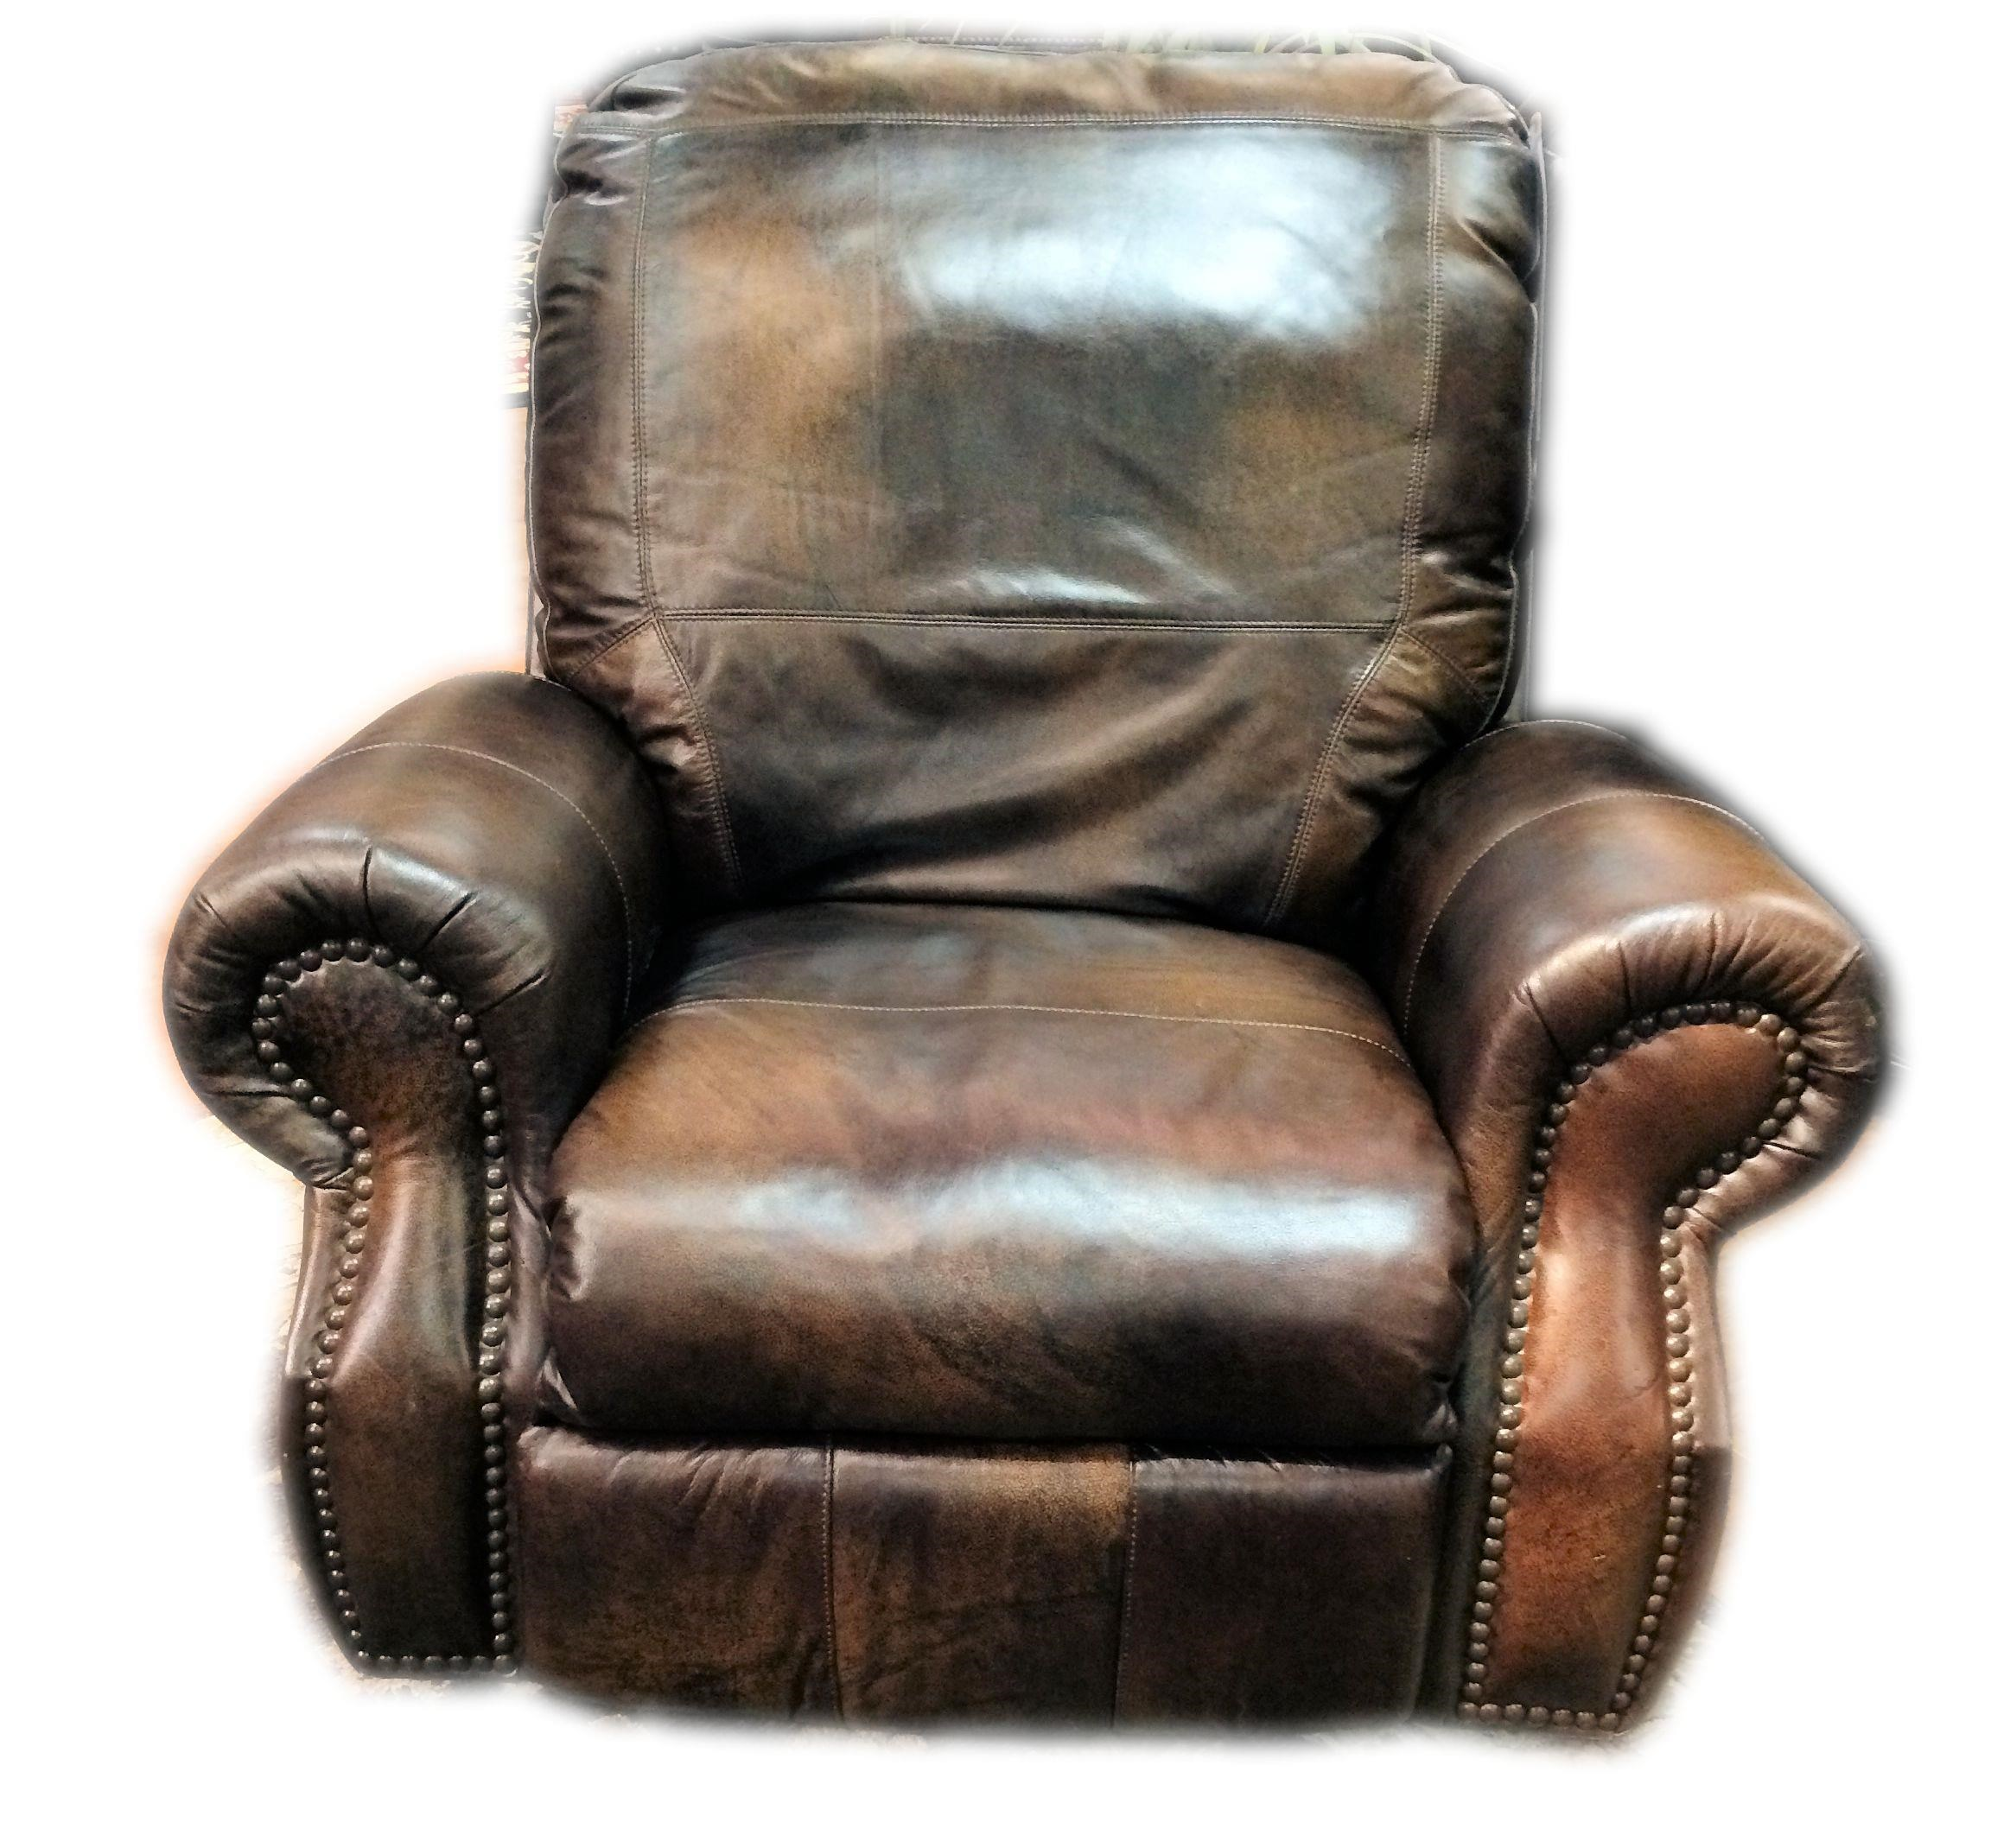 USA Premium Leather 8755 All Leather Recliner - Miskelly Furniture - Three Way Recliner  sc 1 st  Miskelly Furniture & USA Premium Leather 8755 All Leather Recliner - Miskelly Furniture ... islam-shia.org